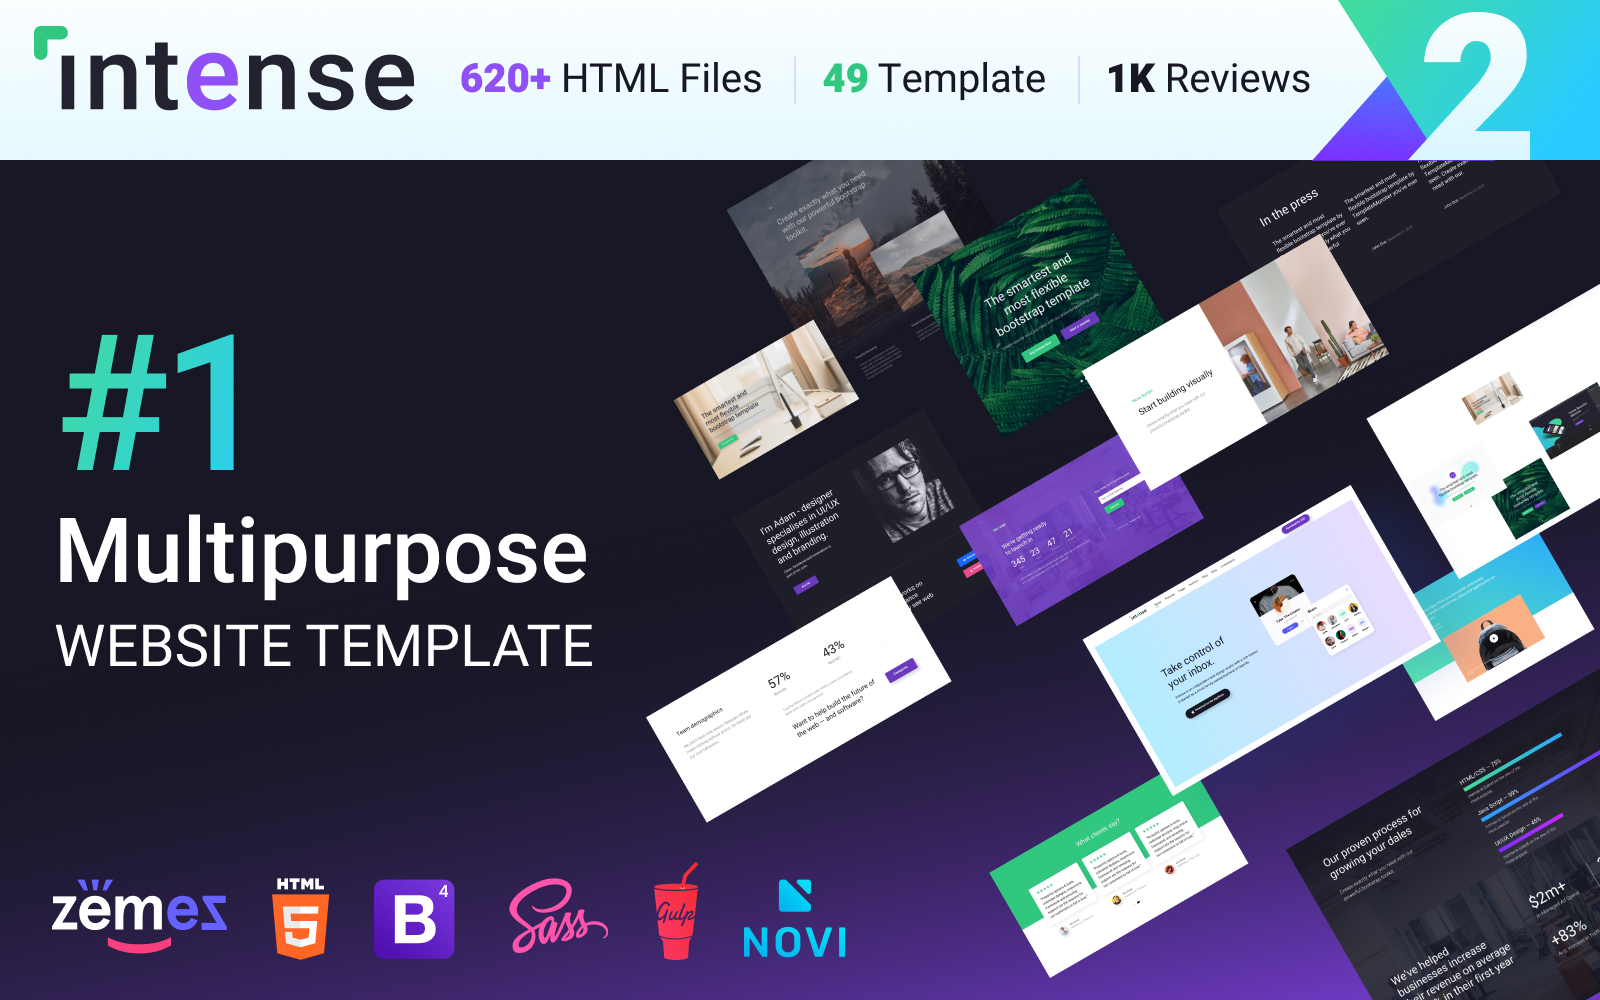 Responsivt Multipurpose Website Template Intense - #1 HTML Bootstrap Hemsidemall #58888